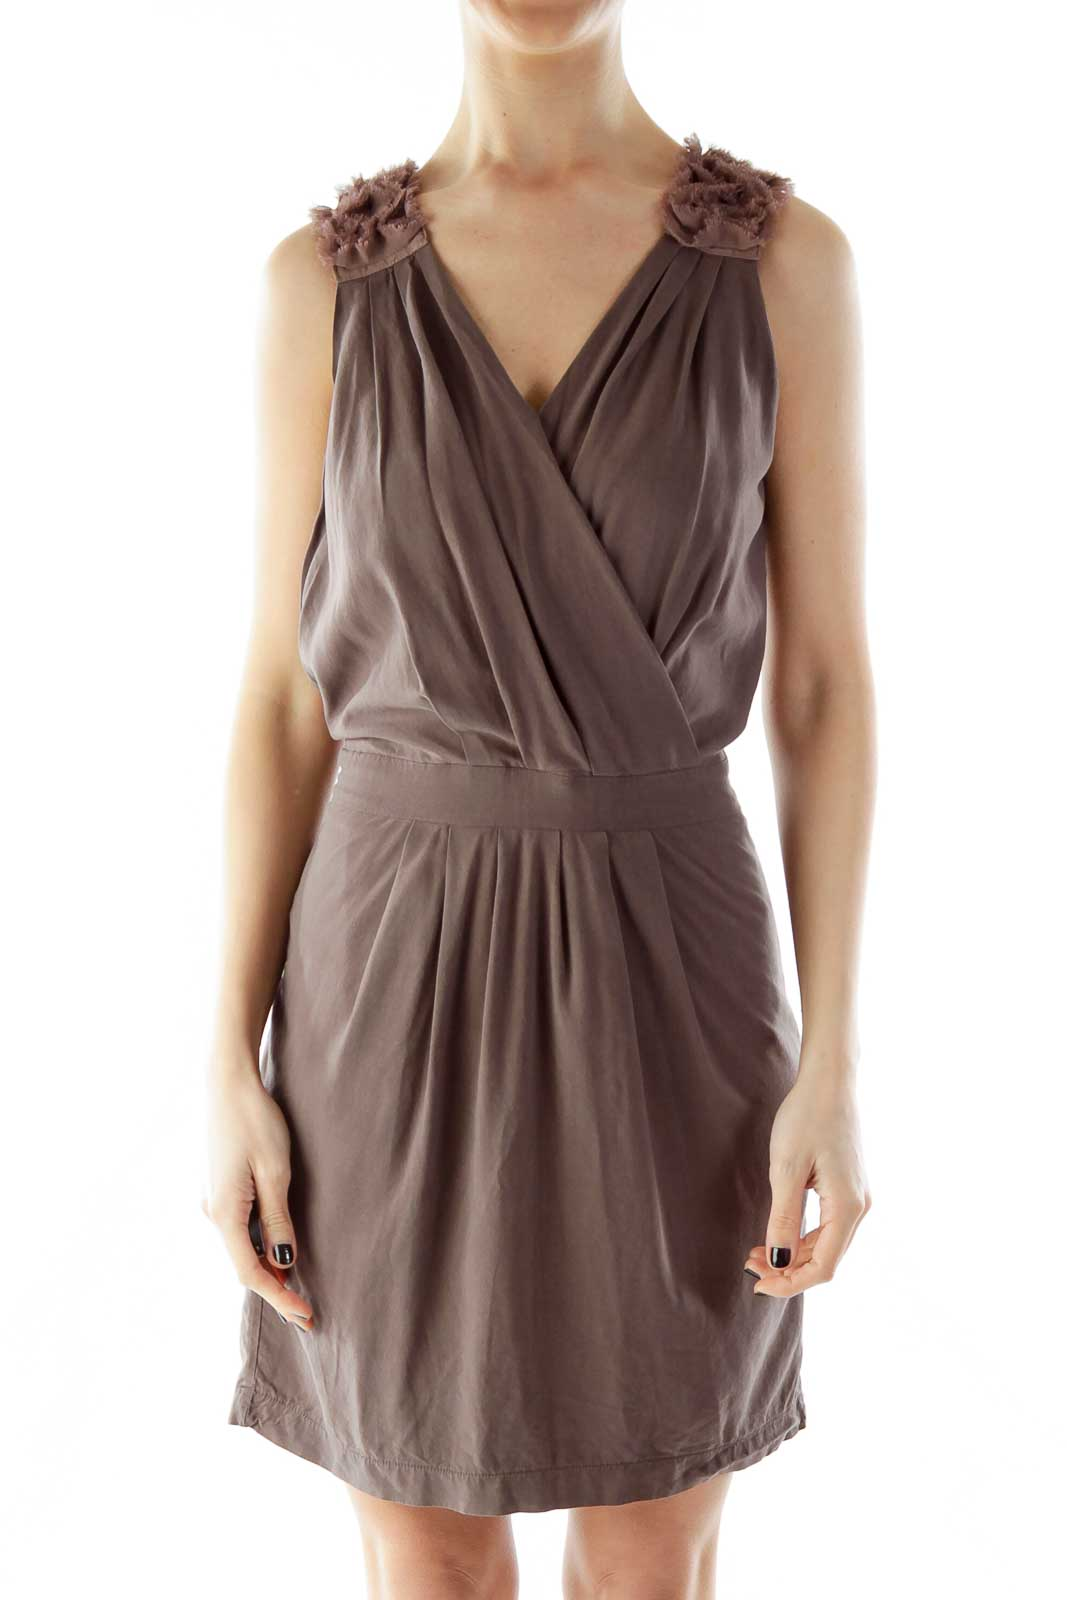 Brown Ruffled Sleeveless Dress Front